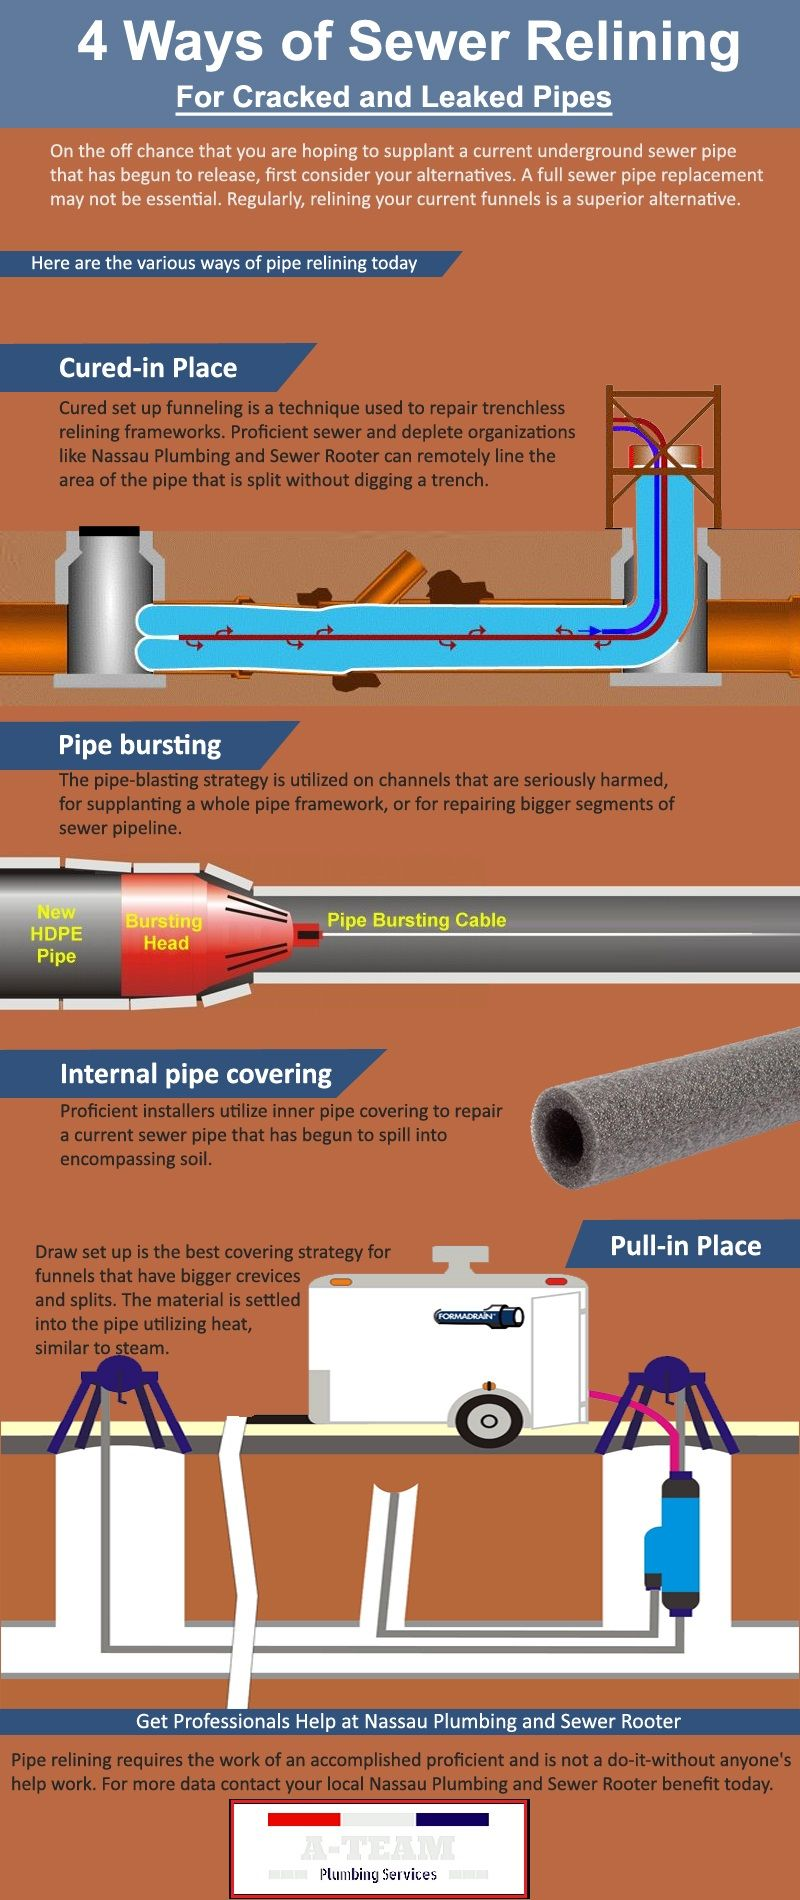 4 Way Of Sewer Relining For Cracked And Leaked Pipes